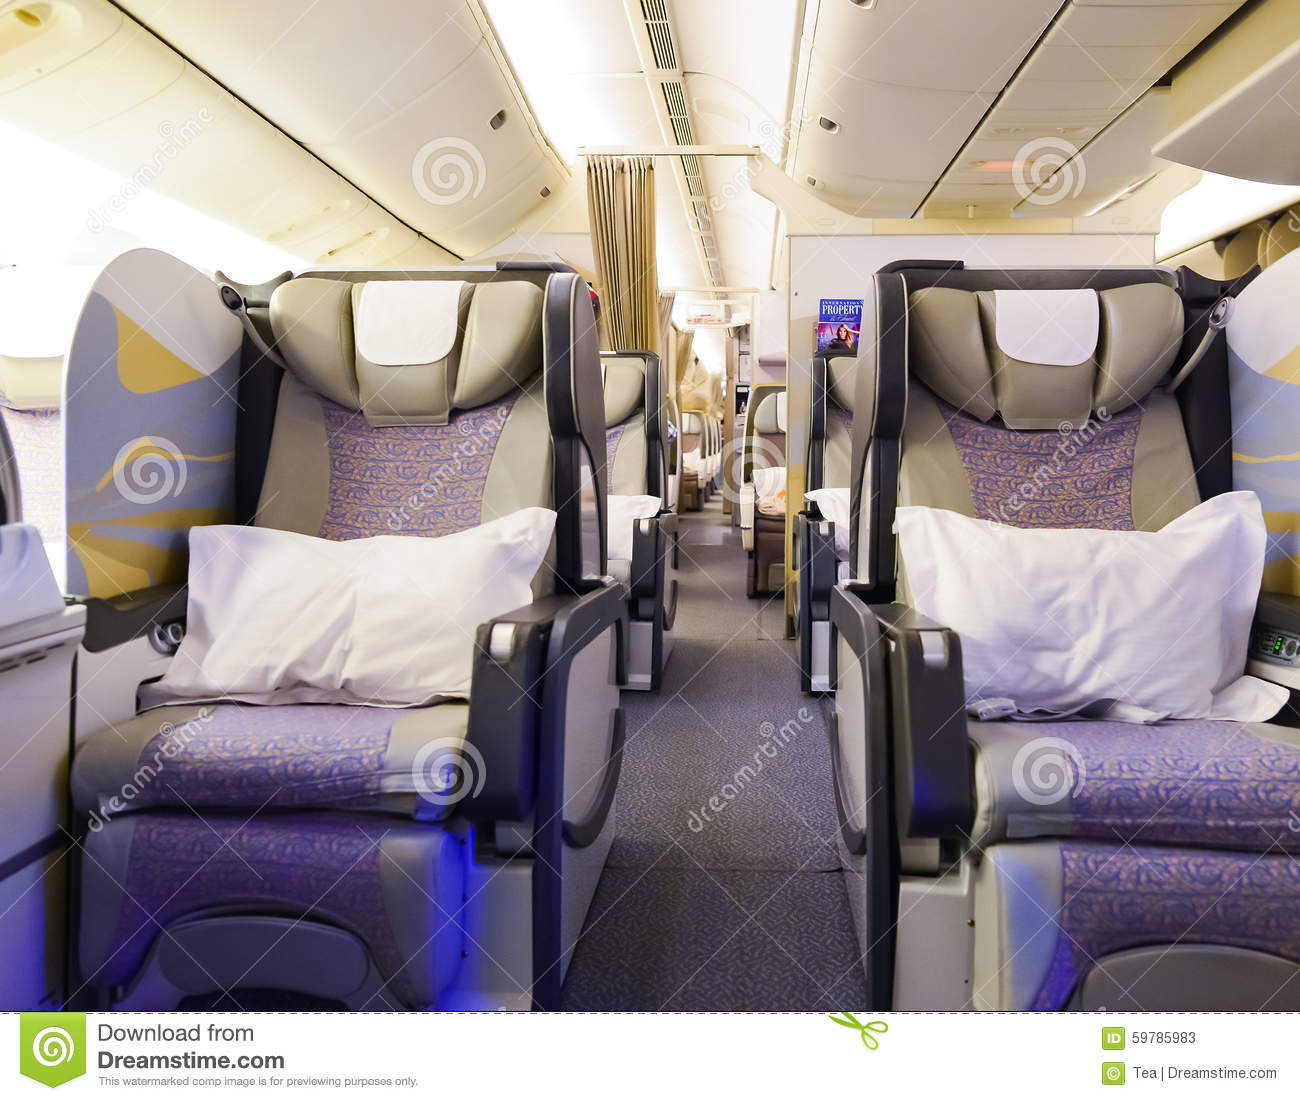 Emirates first class boeing 777 interior editorial stock for First class 8 interieur